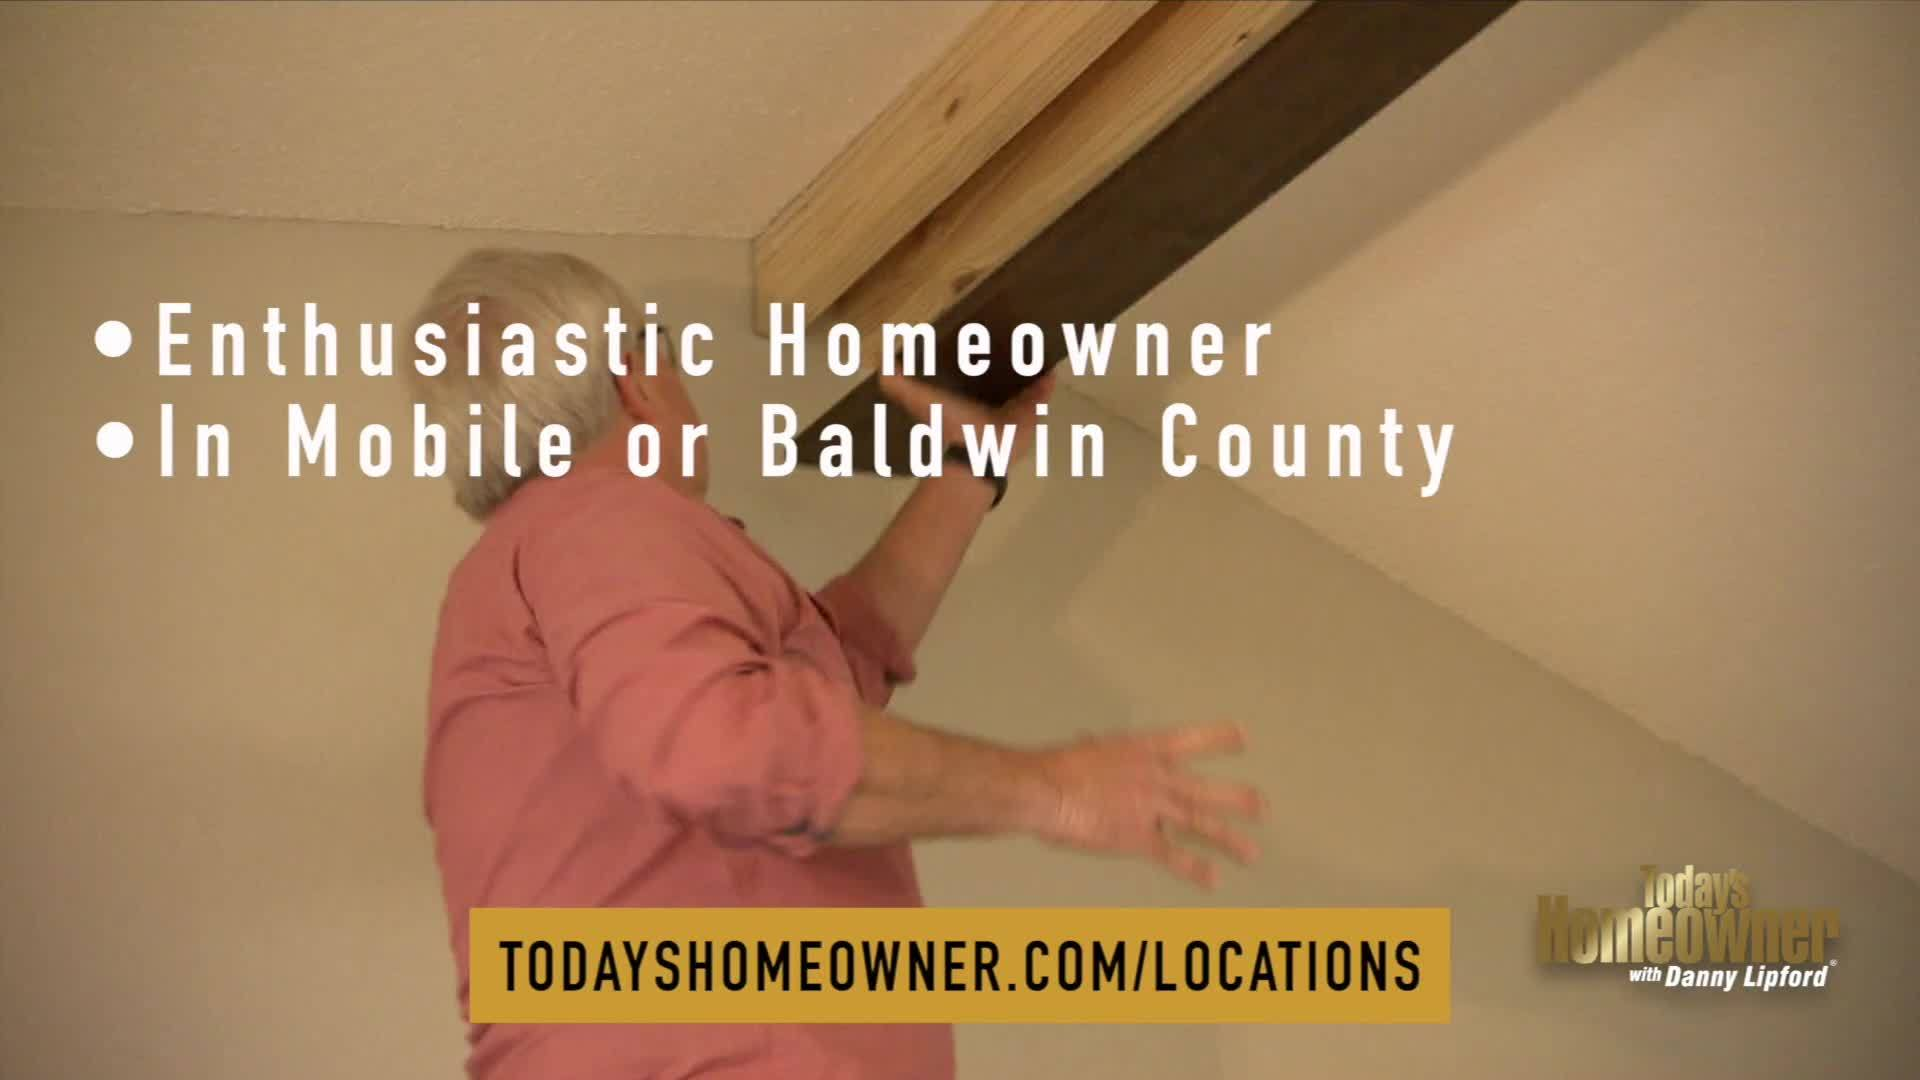 """""""Today's Homeowner"""" is launching a big campaign seeking locations/homeowners to appear on the new season of the show and Danny wants to invite you!"""